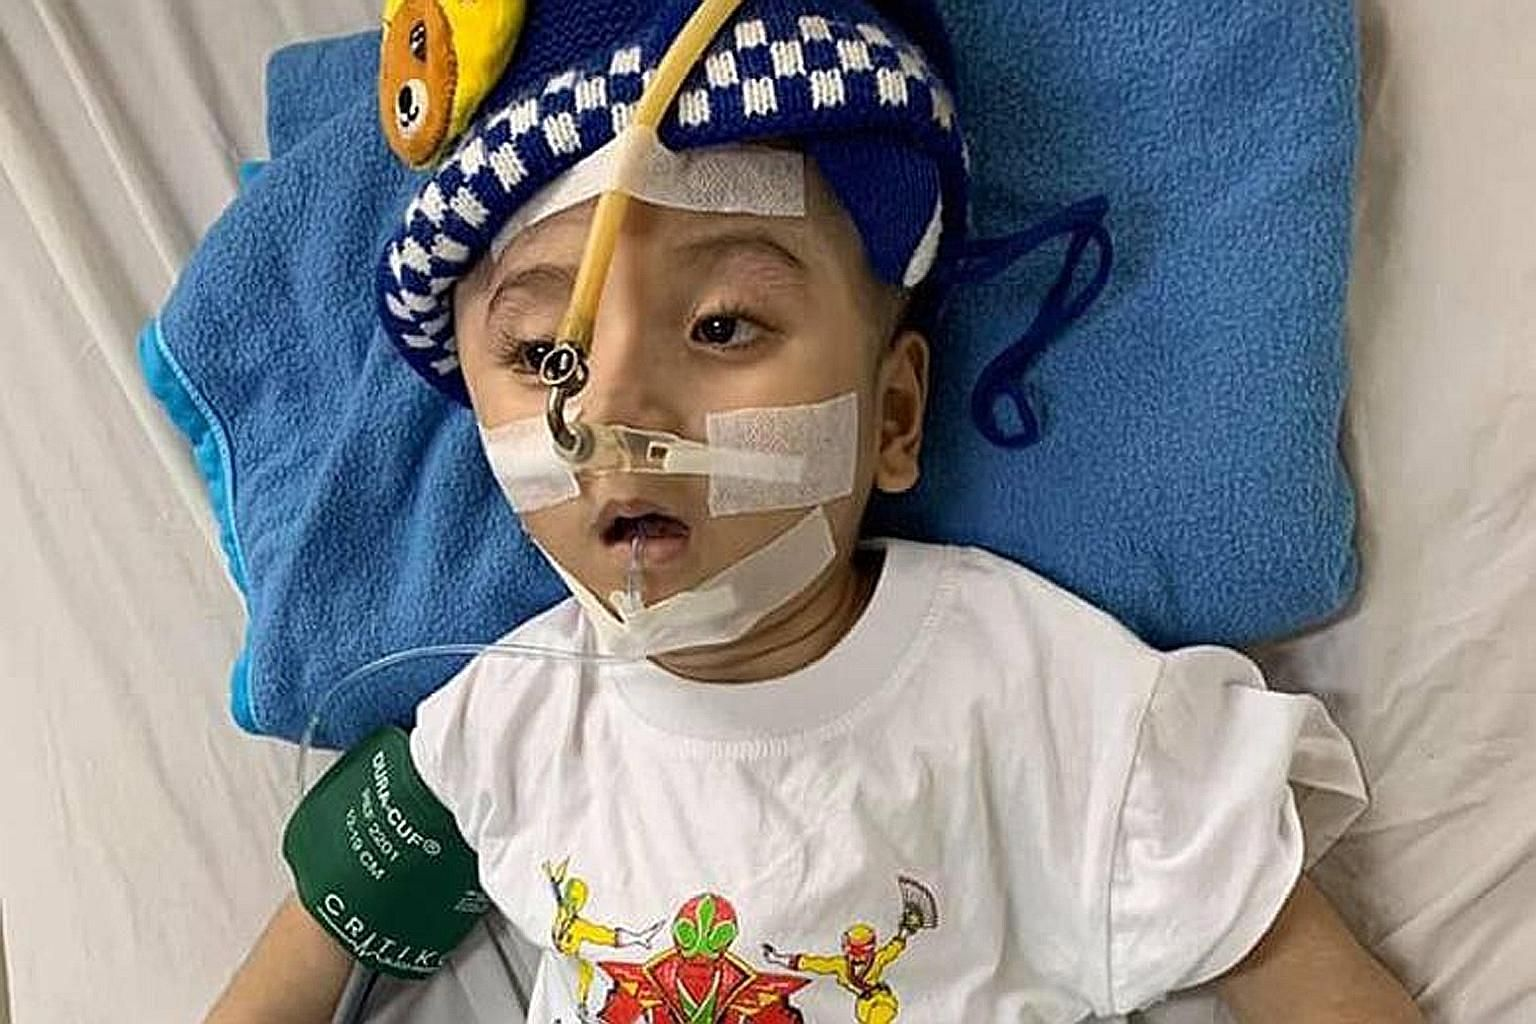 Three-year-old Loc Pham Duc Loc died last Thursday of infection while being treated in a Vietnam hospital.